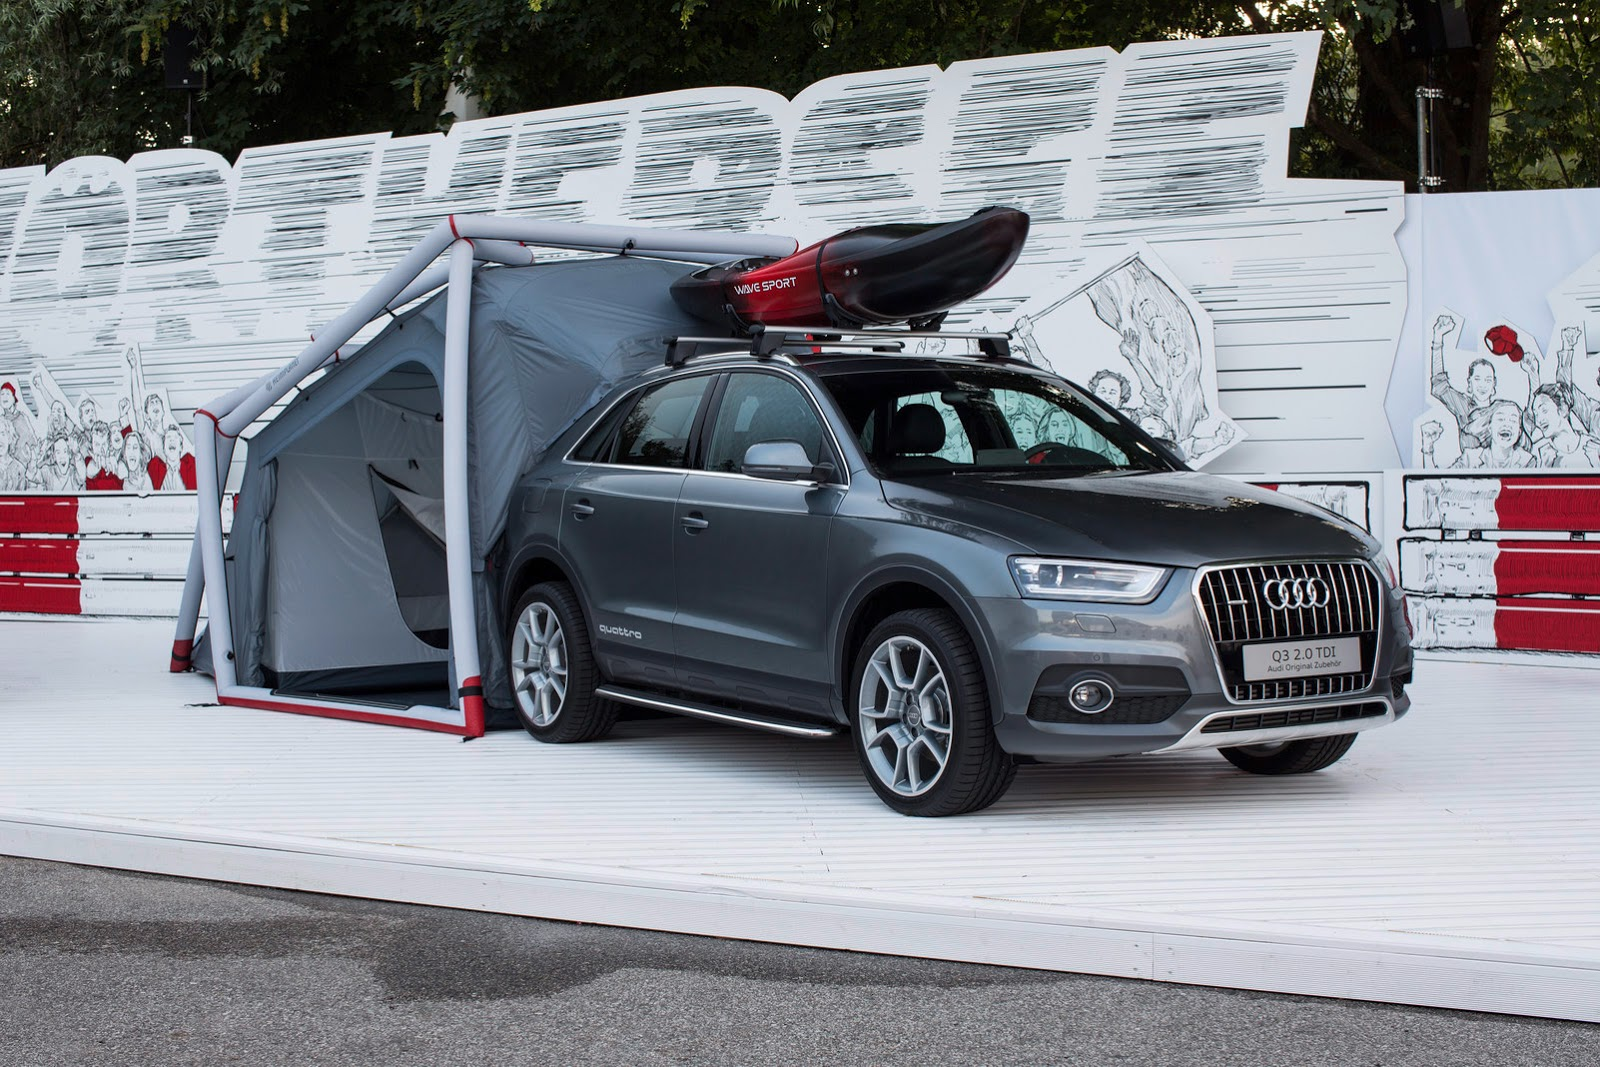 2011 - [Audi] Q3 - Page 10 Audi-Worthersee-11